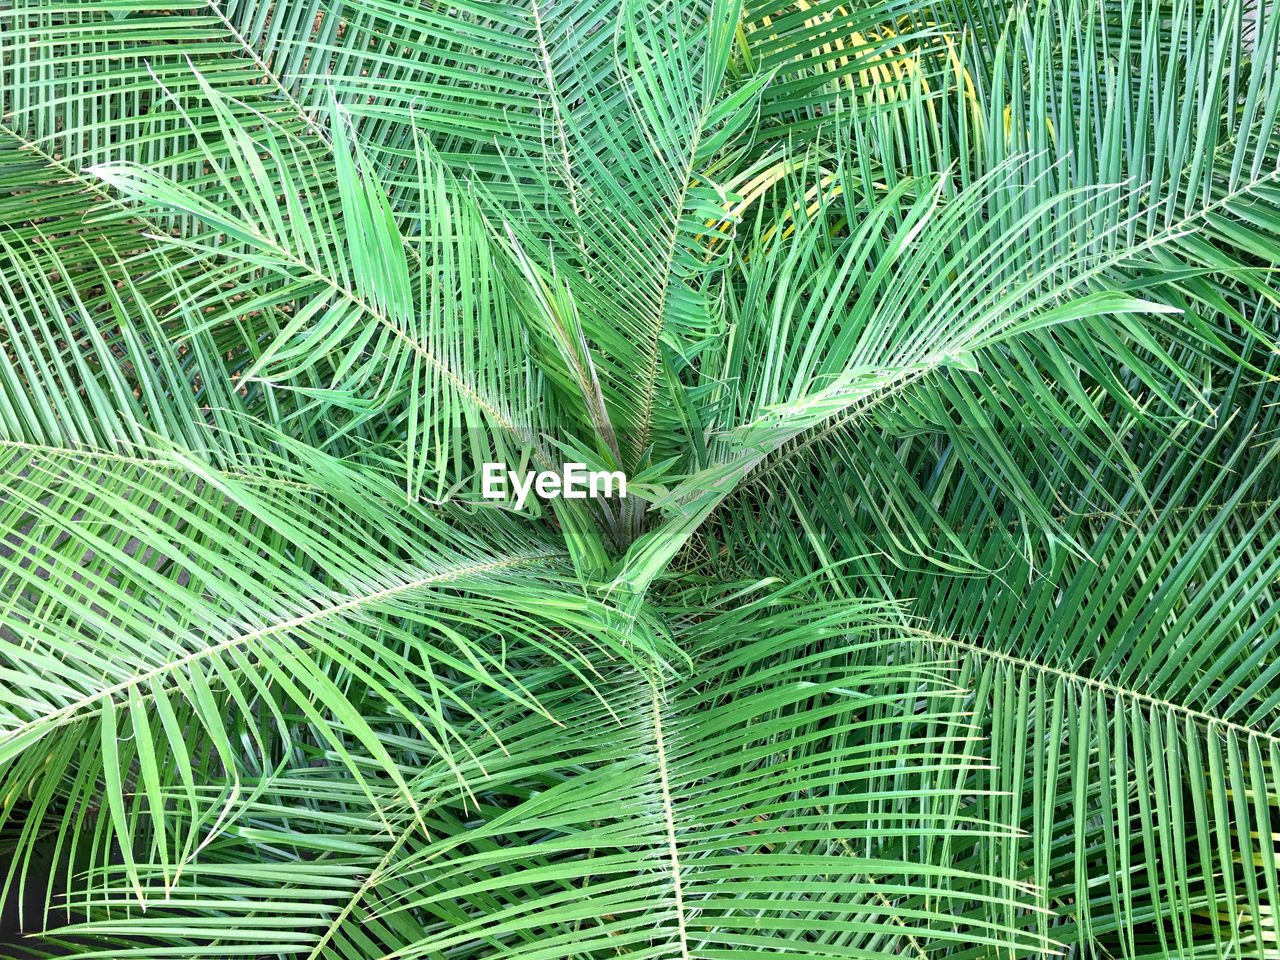 green color, leaf, backgrounds, full frame, plant part, growth, plant, beauty in nature, close-up, no people, nature, palm leaf, palm tree, day, frond, natural pattern, fern, tree, outdoors, pattern